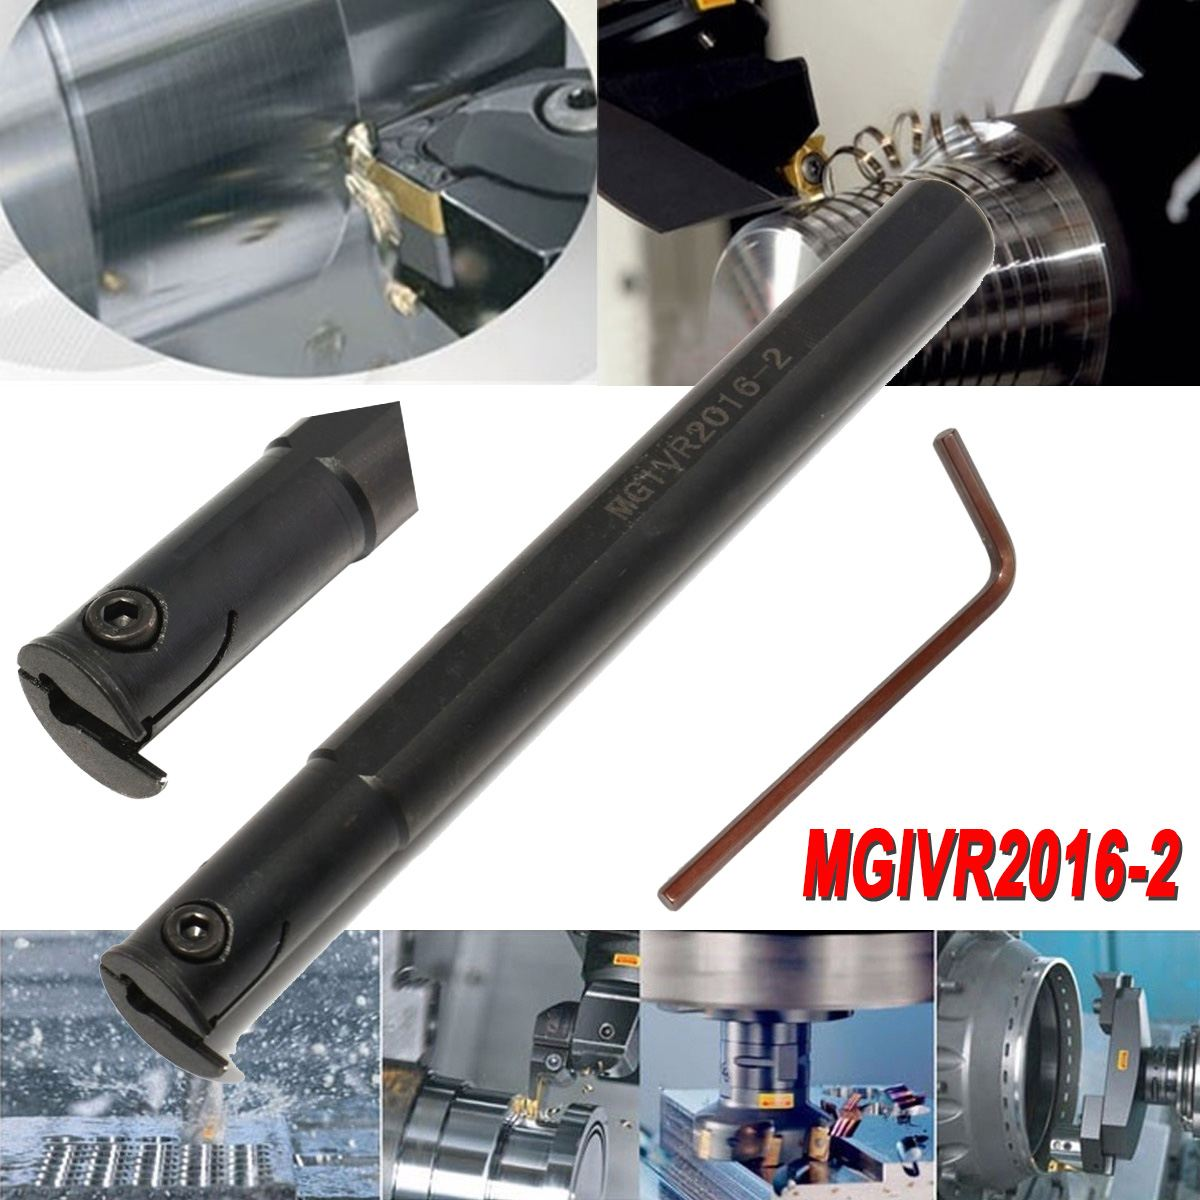 MGIVR2016-2 Partting Grooving Cut-Off Tool Holder For 2mm MGMN200 CNC Lathe